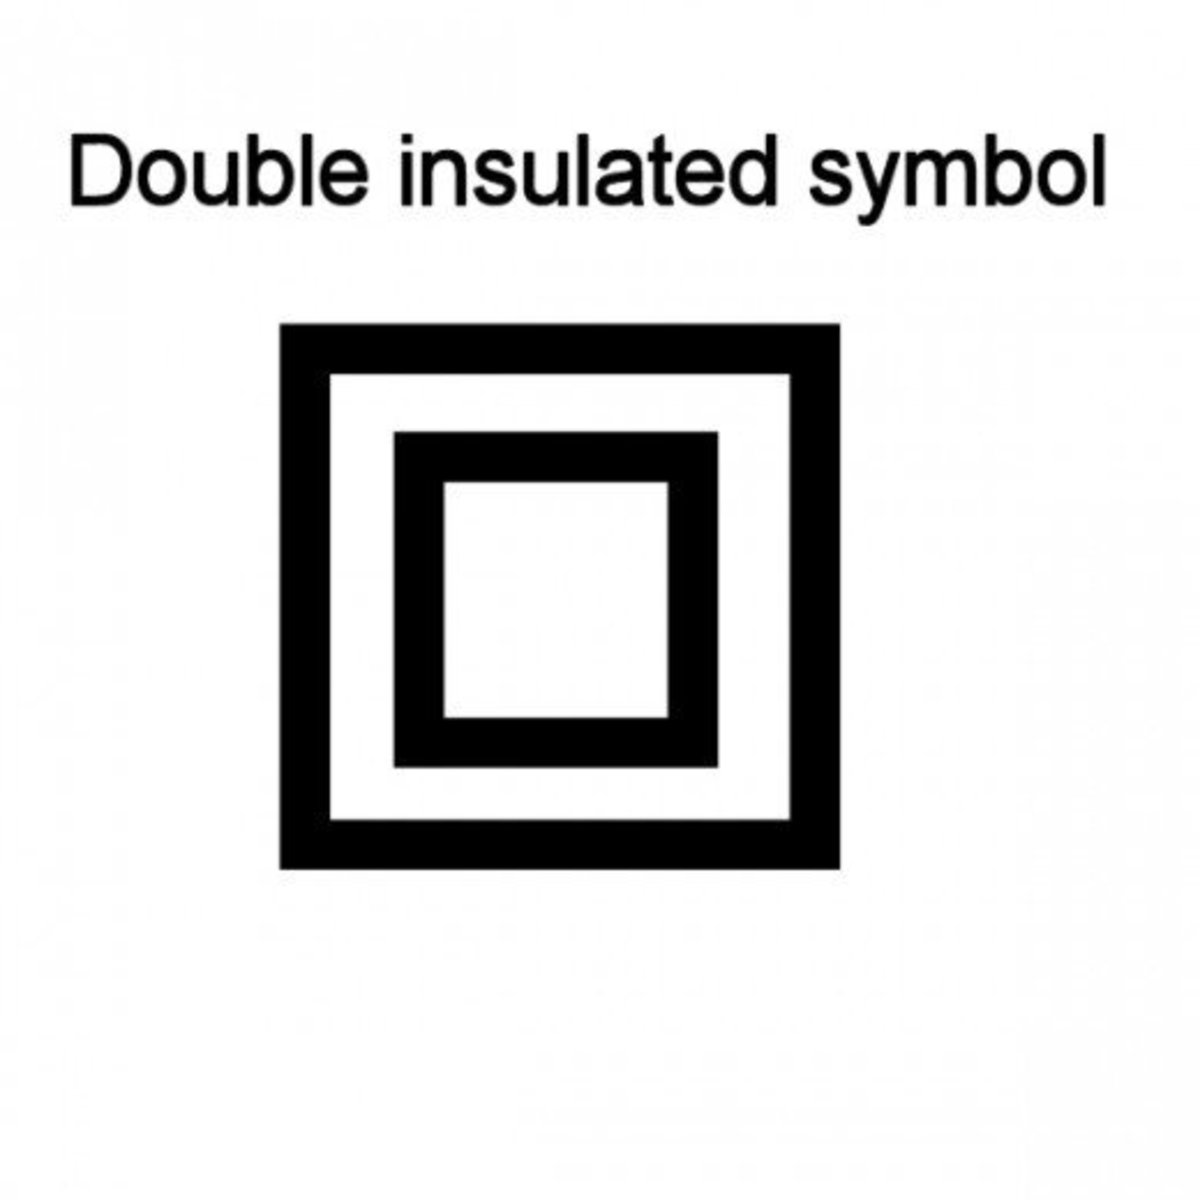 Double insulated appliances are marked with this symbol